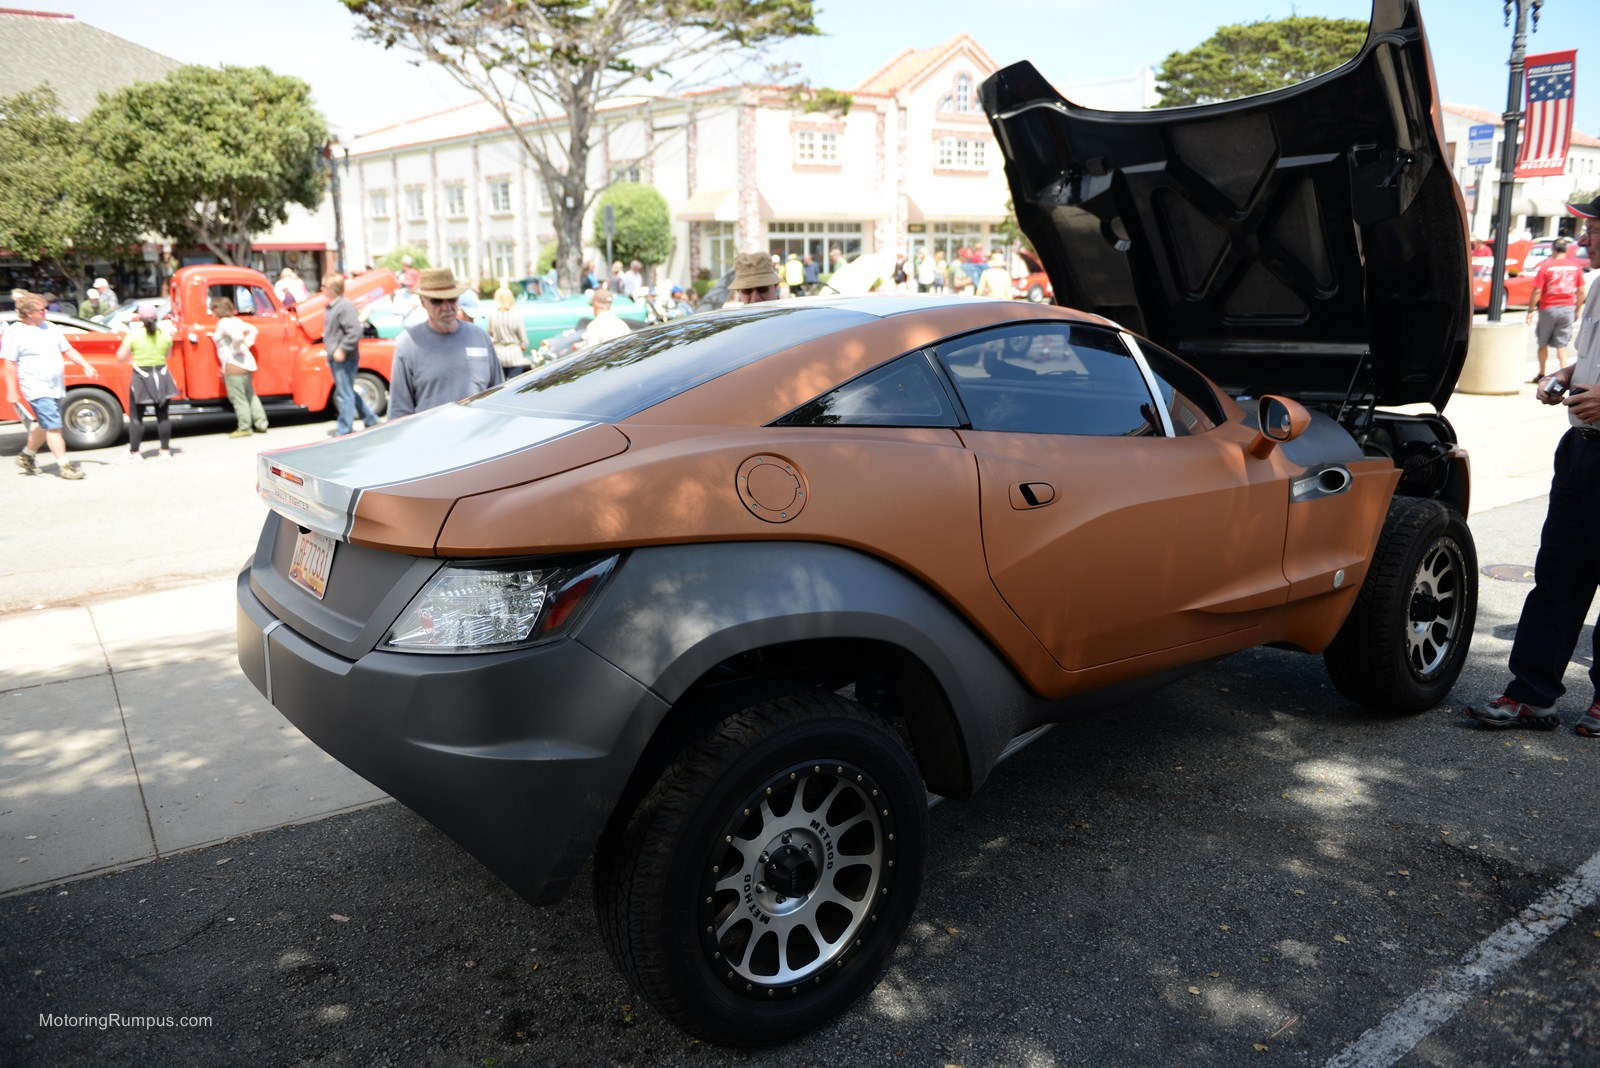 2014 Pacific Grove Concours Auto Rally Rally Fighter